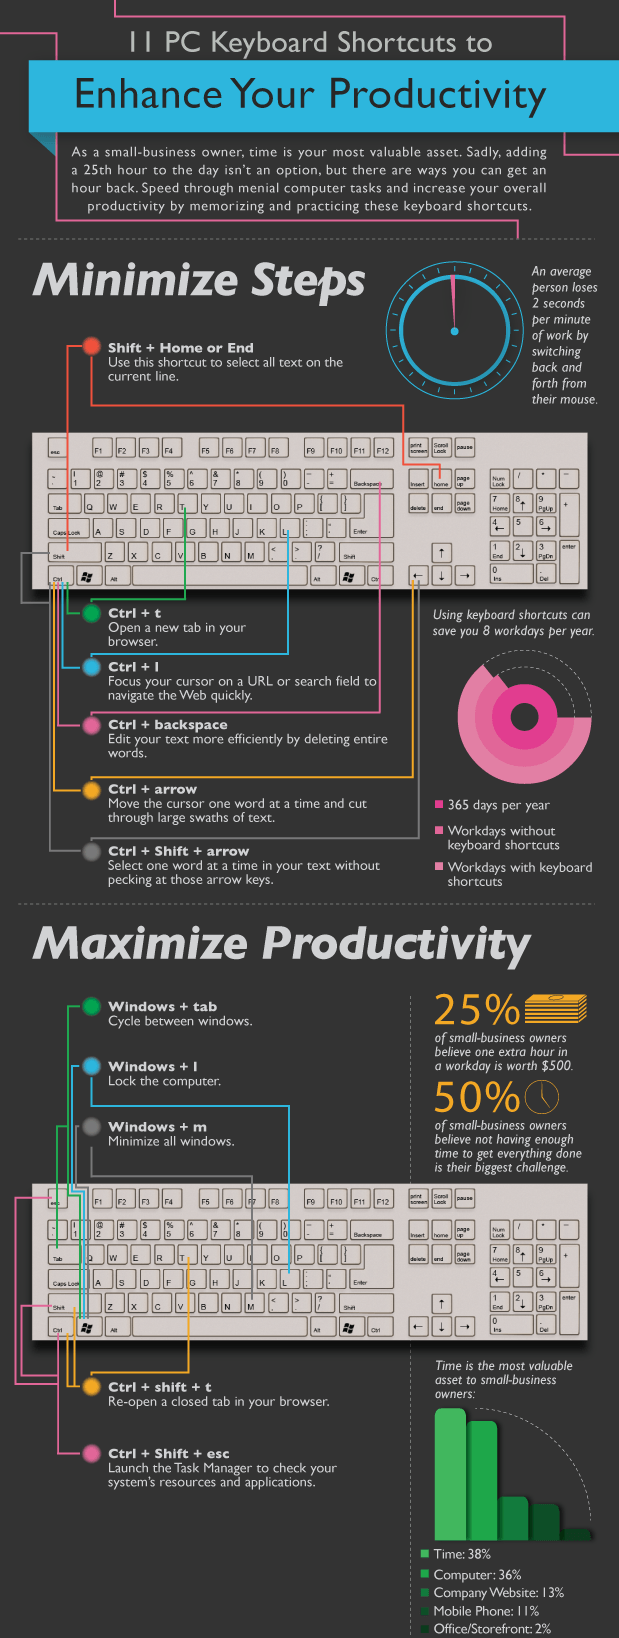 11-pc-keyboard-shortcuts-to-enhance-your-productivity_526154d0c8730